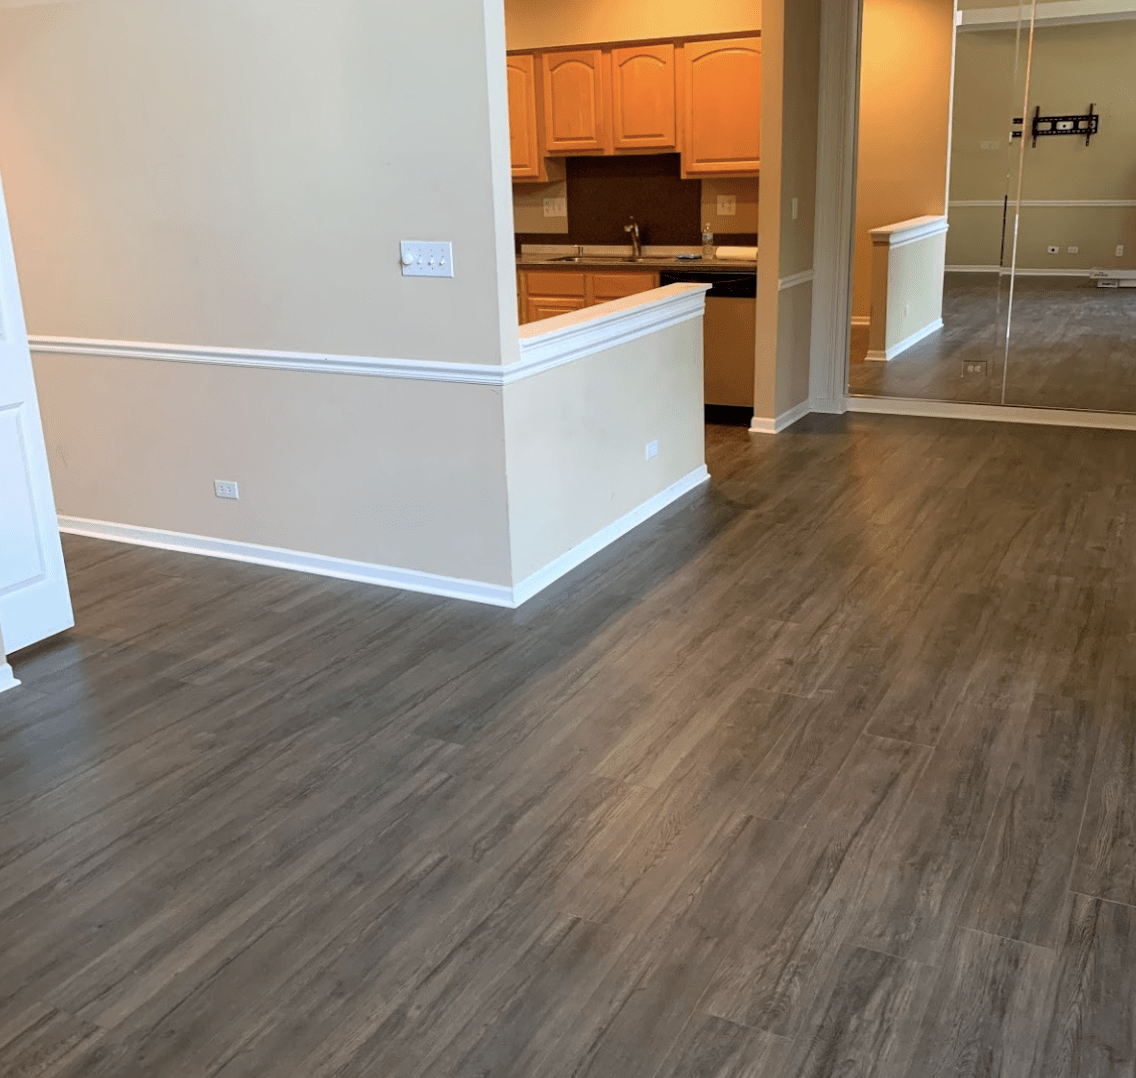 Modern wood look flooring in Rolling Meadows, IL from Alpha Carpet & Flooring